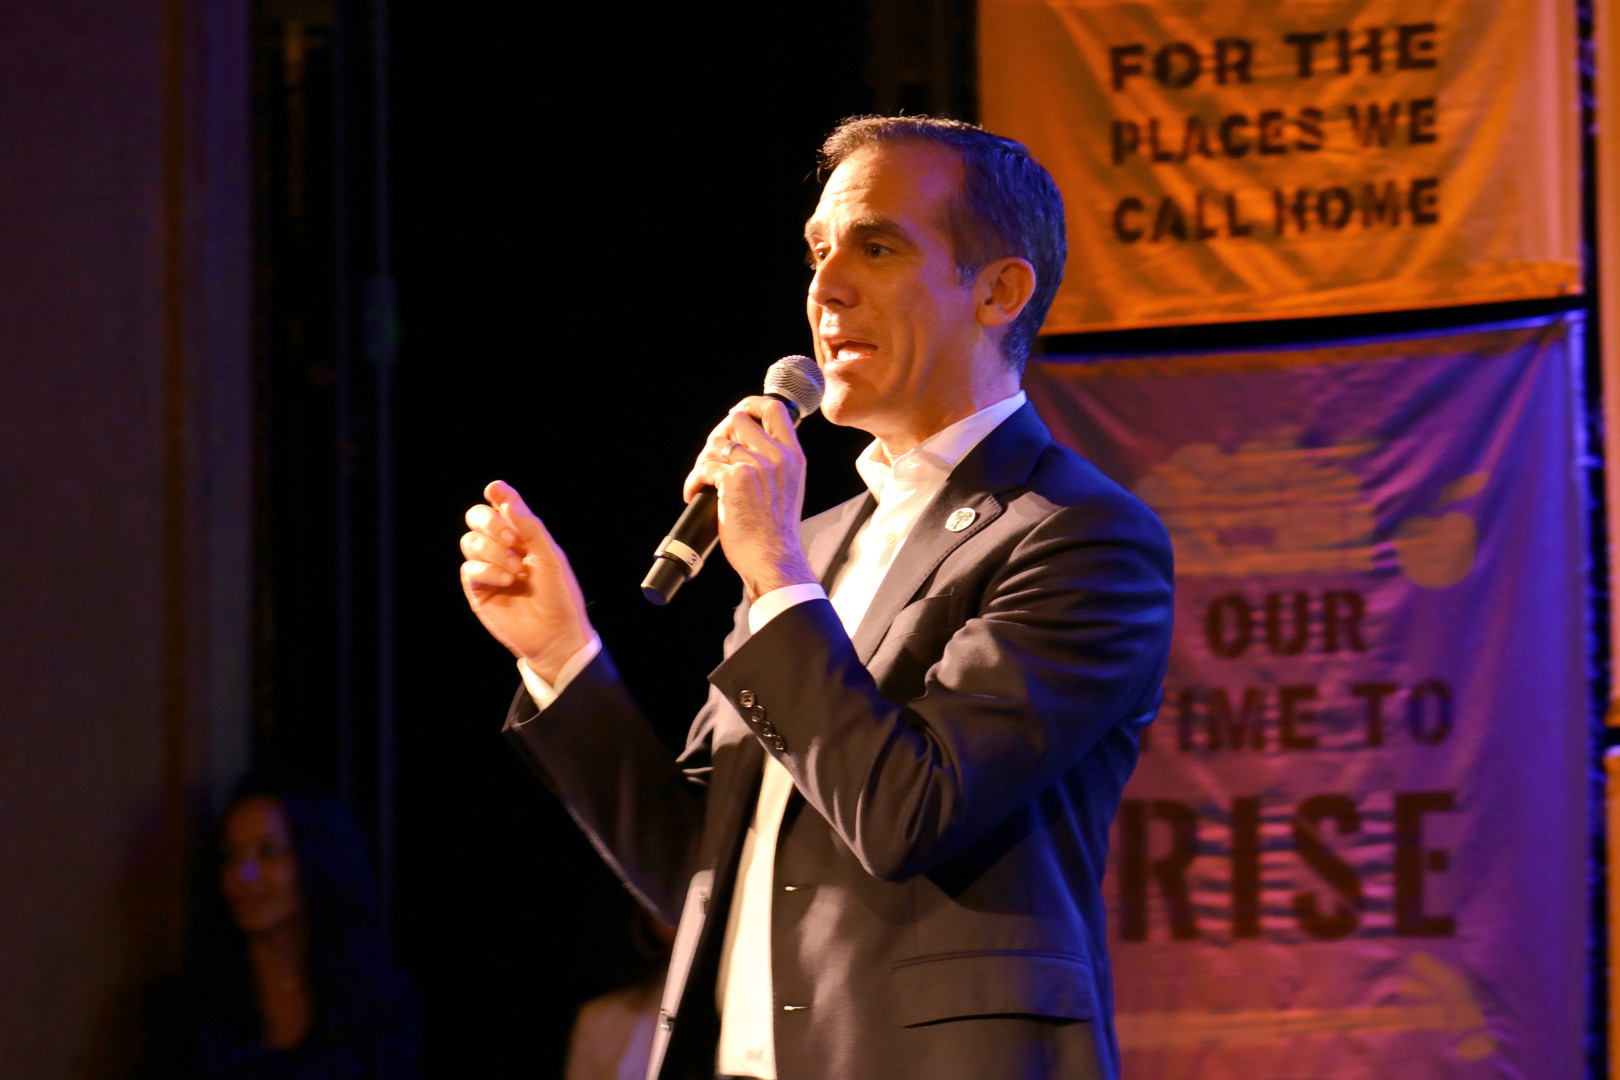 Mayor Garcetti Panders to Youth